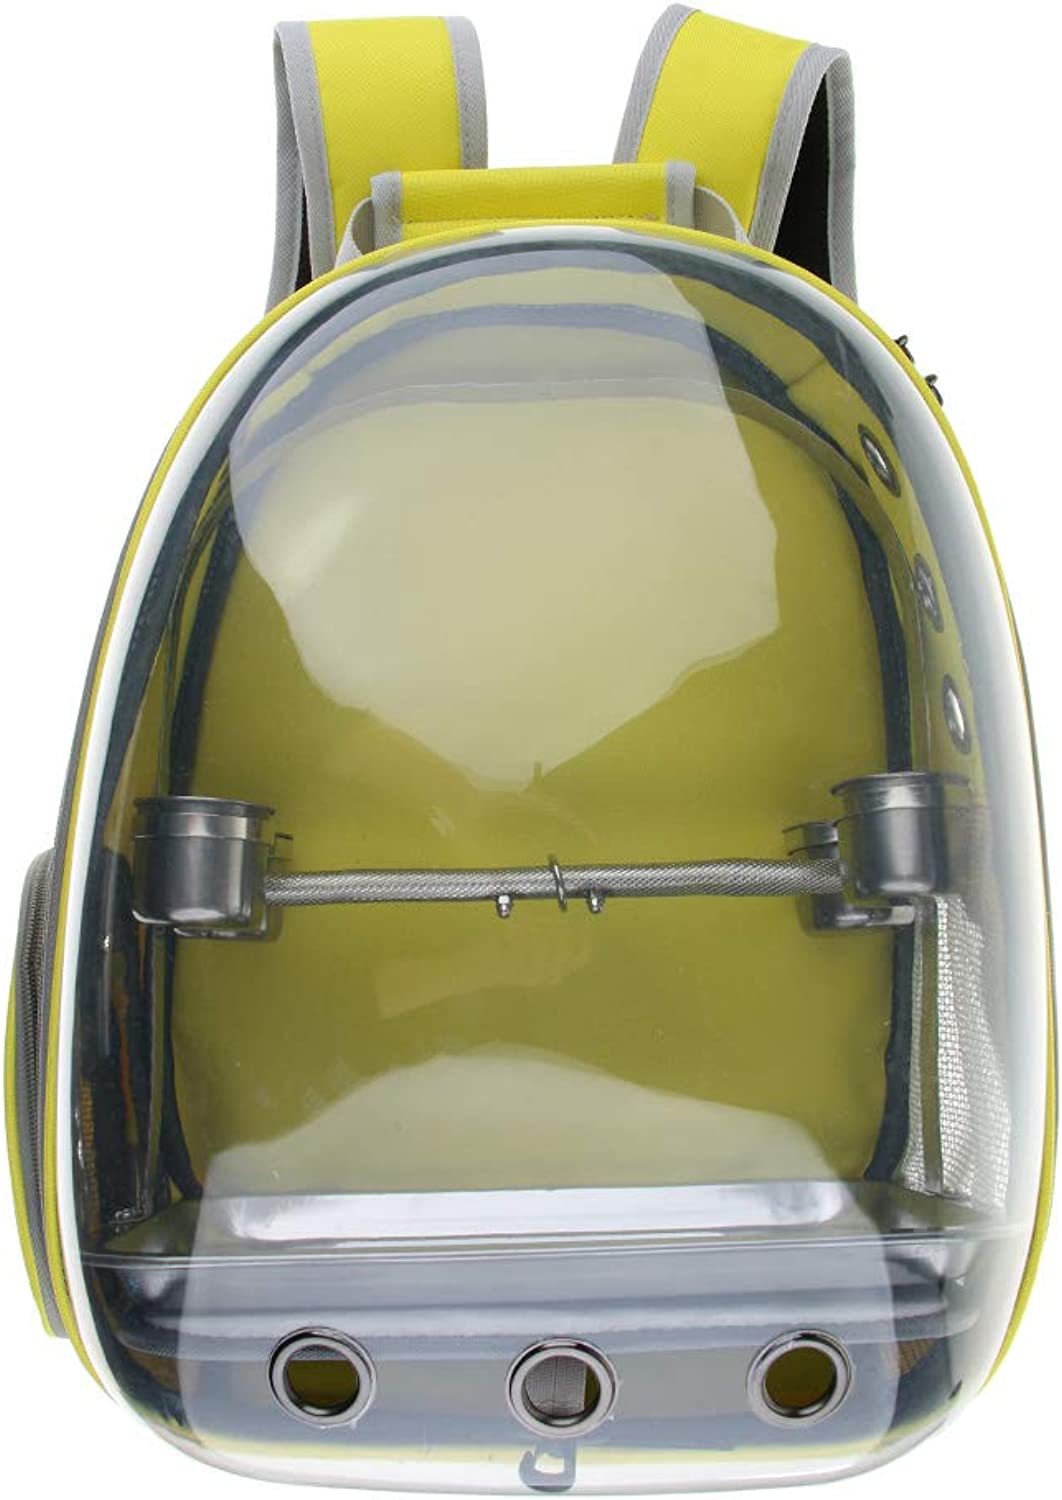 Perfeclan Clear Cover Parred Bird Carrier Backpack with Stainless Steel Perch Stand & Feeder (Yellow)